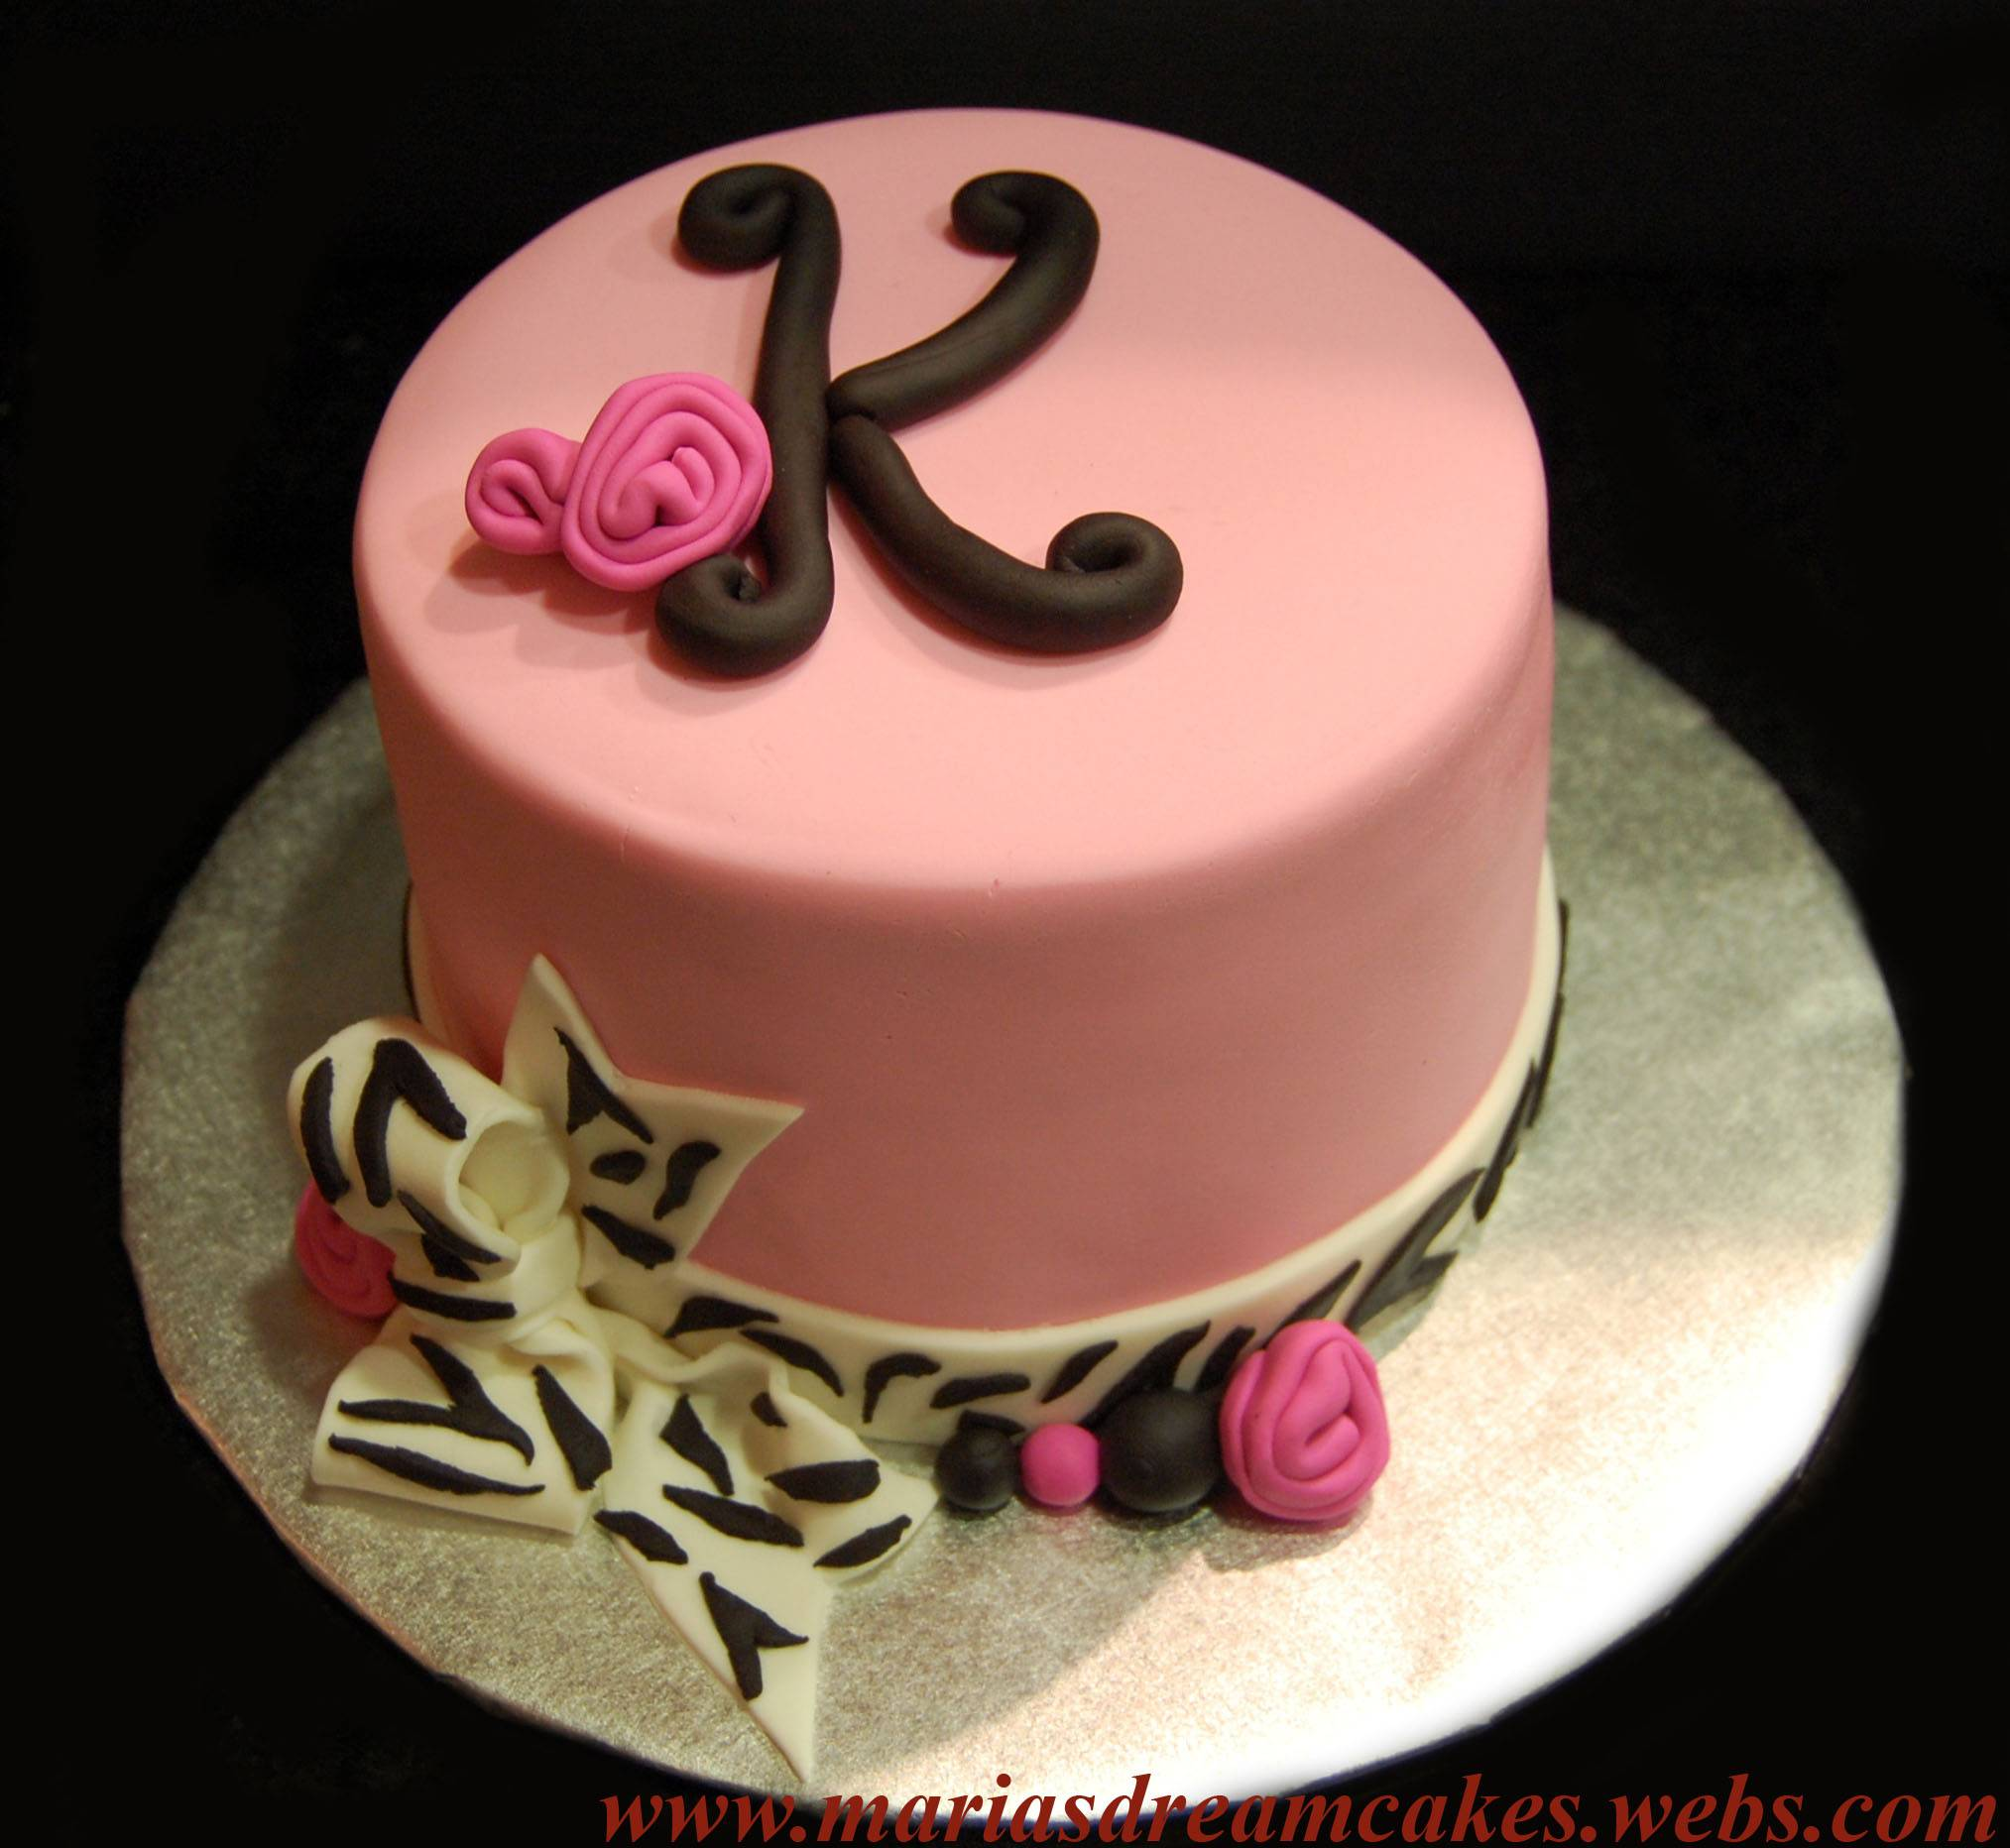 Birthday Cake for your beloved